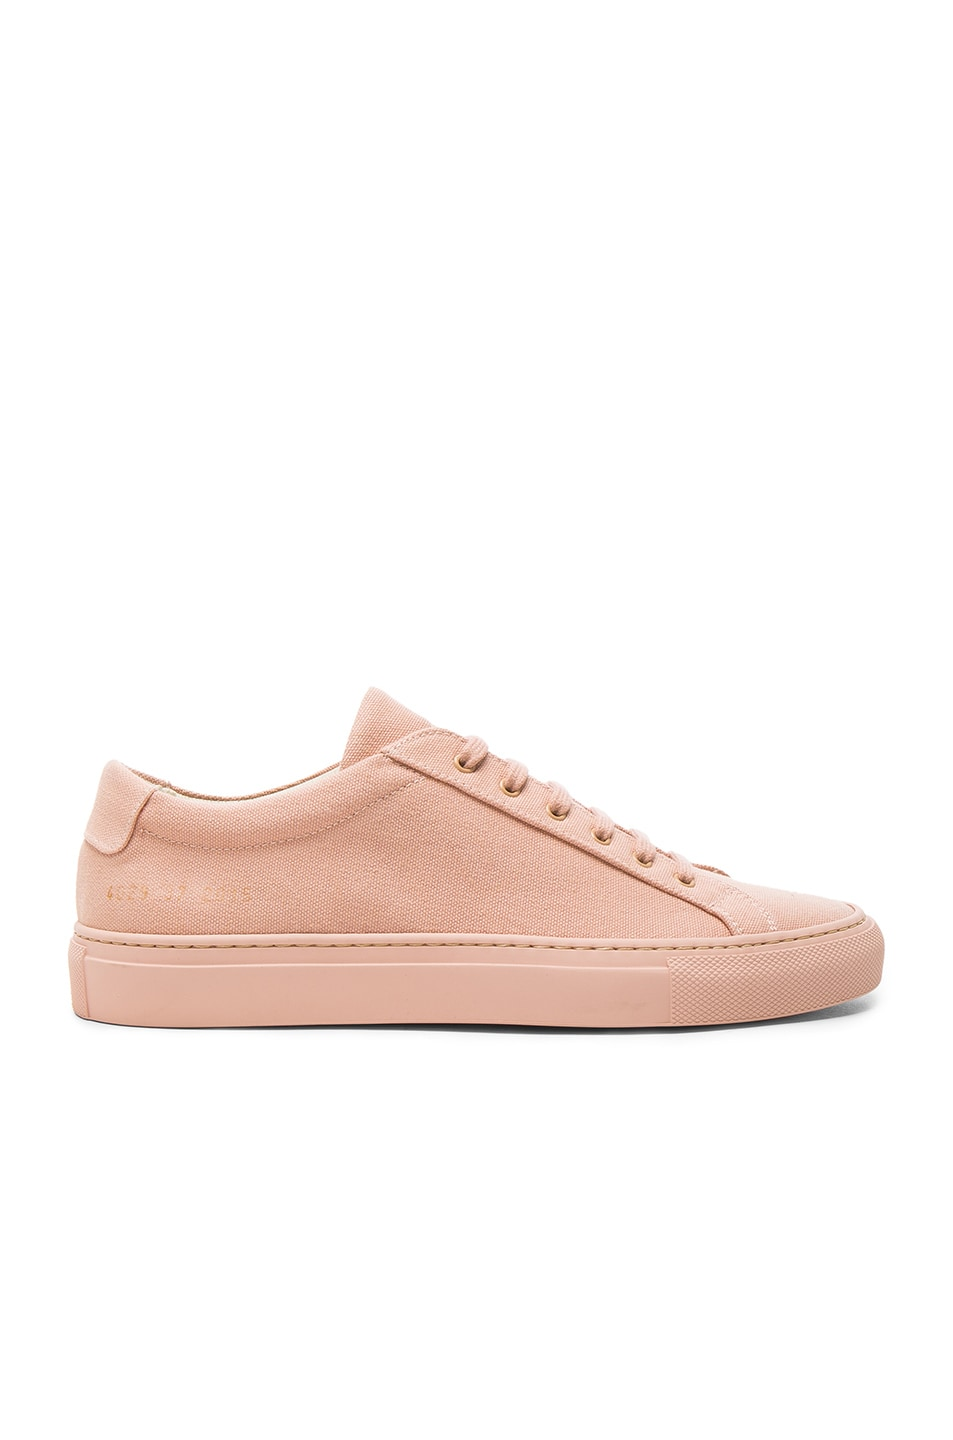 Image 1 of Common Projects Canvas Achilles Low in Blush